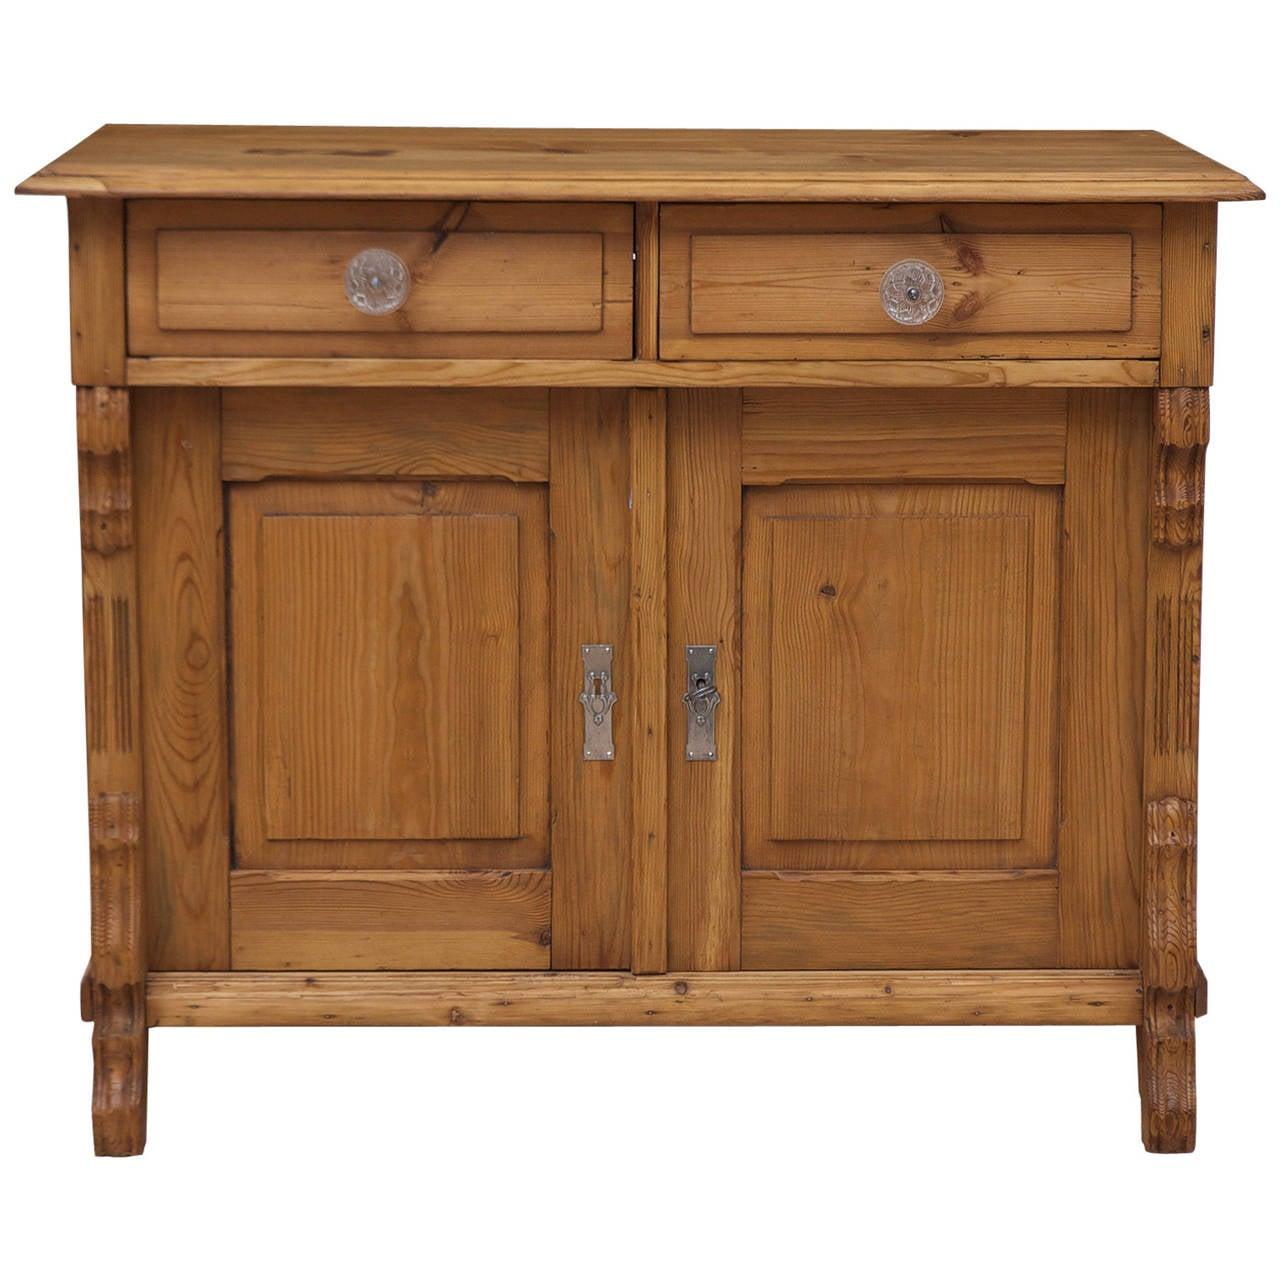 pine german louis philippe cabinet circa 1850 for sale at 1stdibs